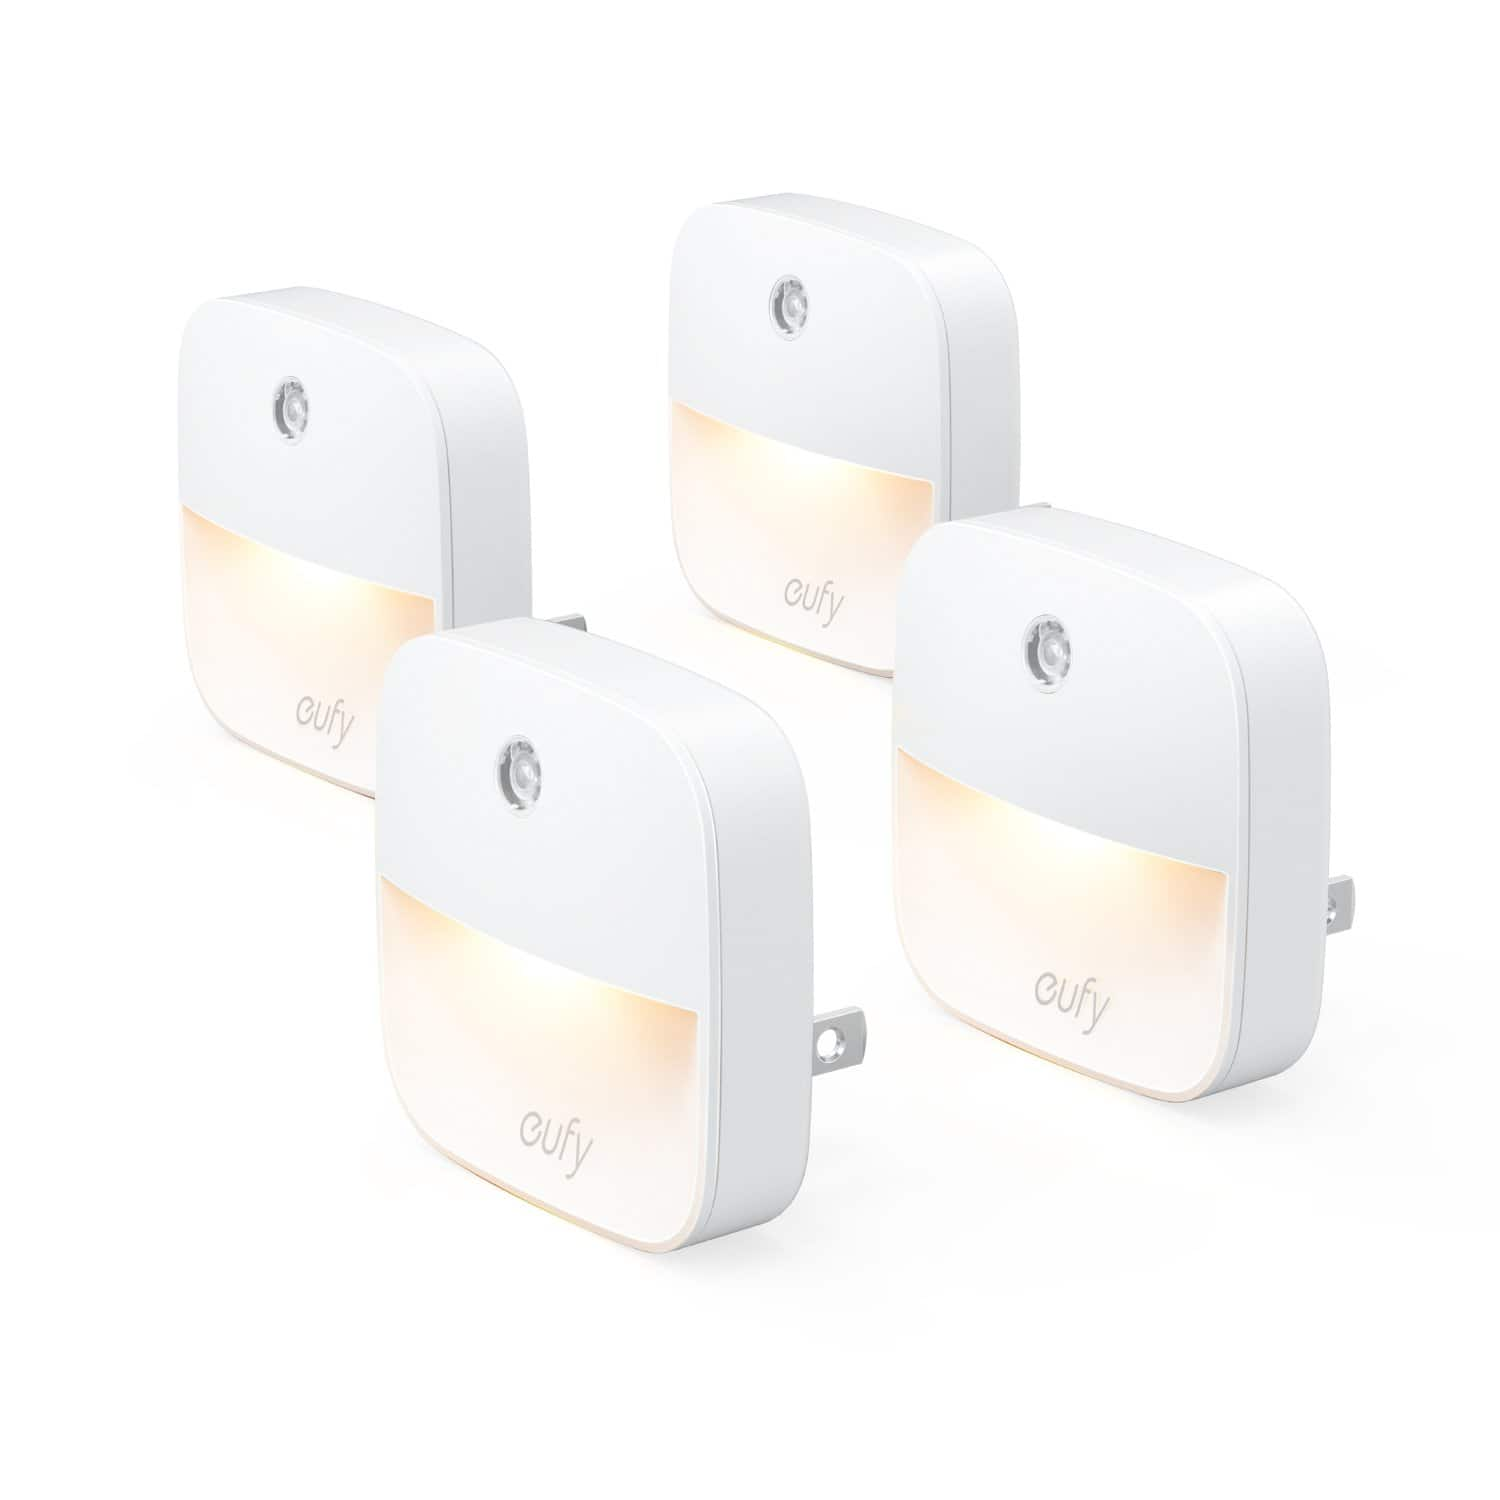 Eufy Lumi Plug-In Night Light 4 Pack/ 6 Pack from $9.99 + FSSS